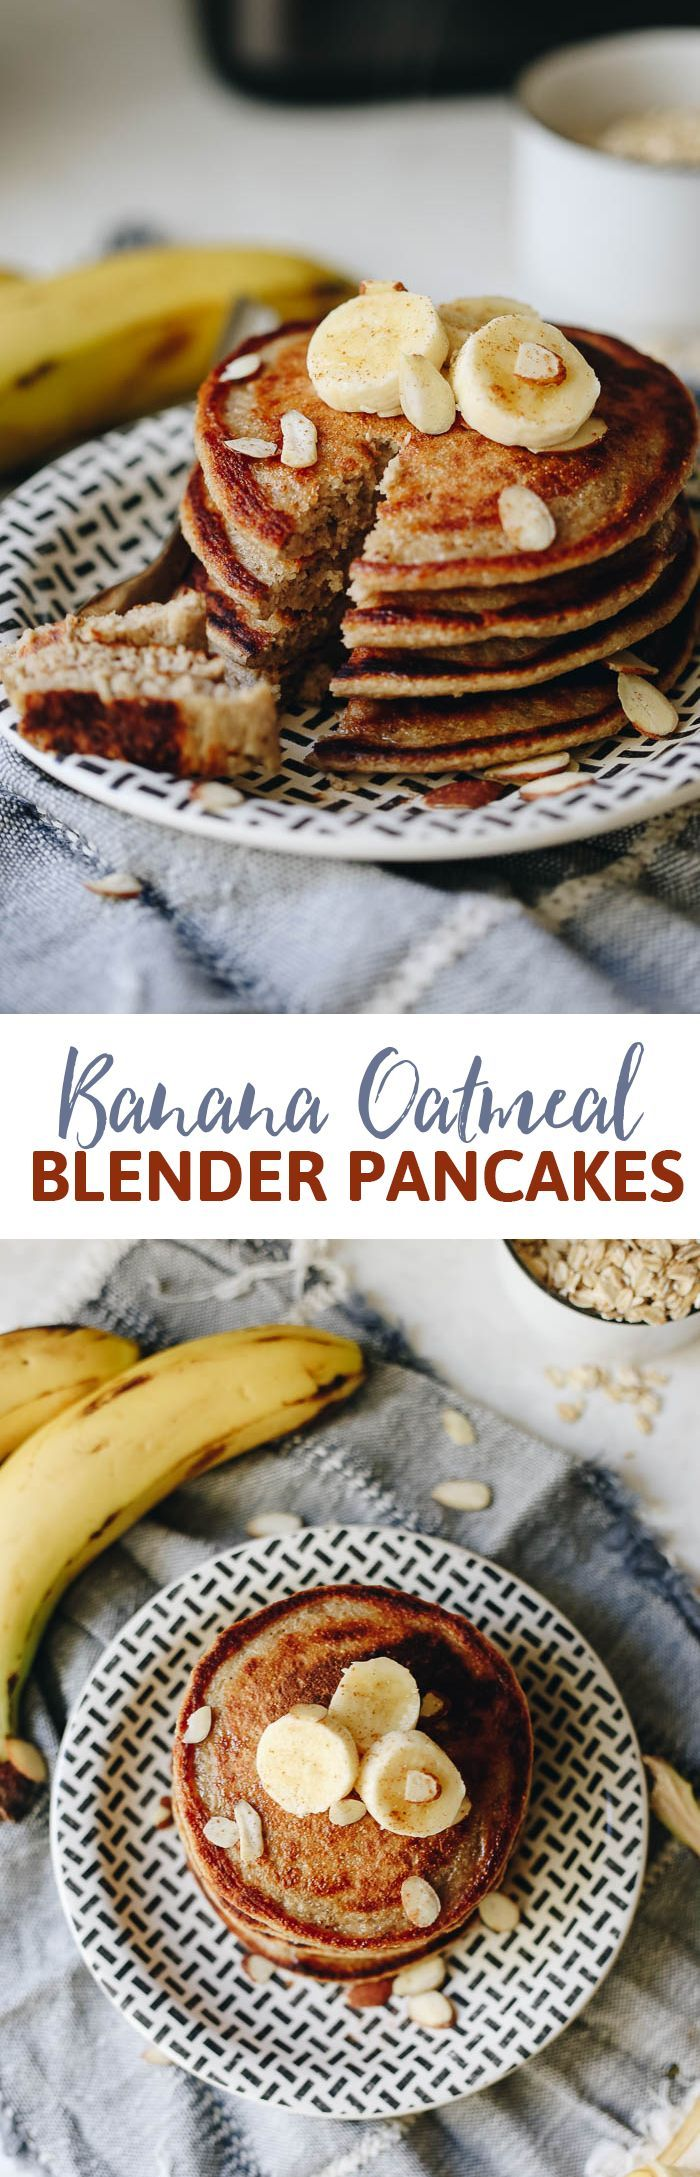 Weekend breakfasts just got so much easier with these Banana Oatmeal Blender Pancakes! Just throw all the ingredients into your blender and then cook on a skillet for delicious and healthy pancakes that taste just like banana bread!